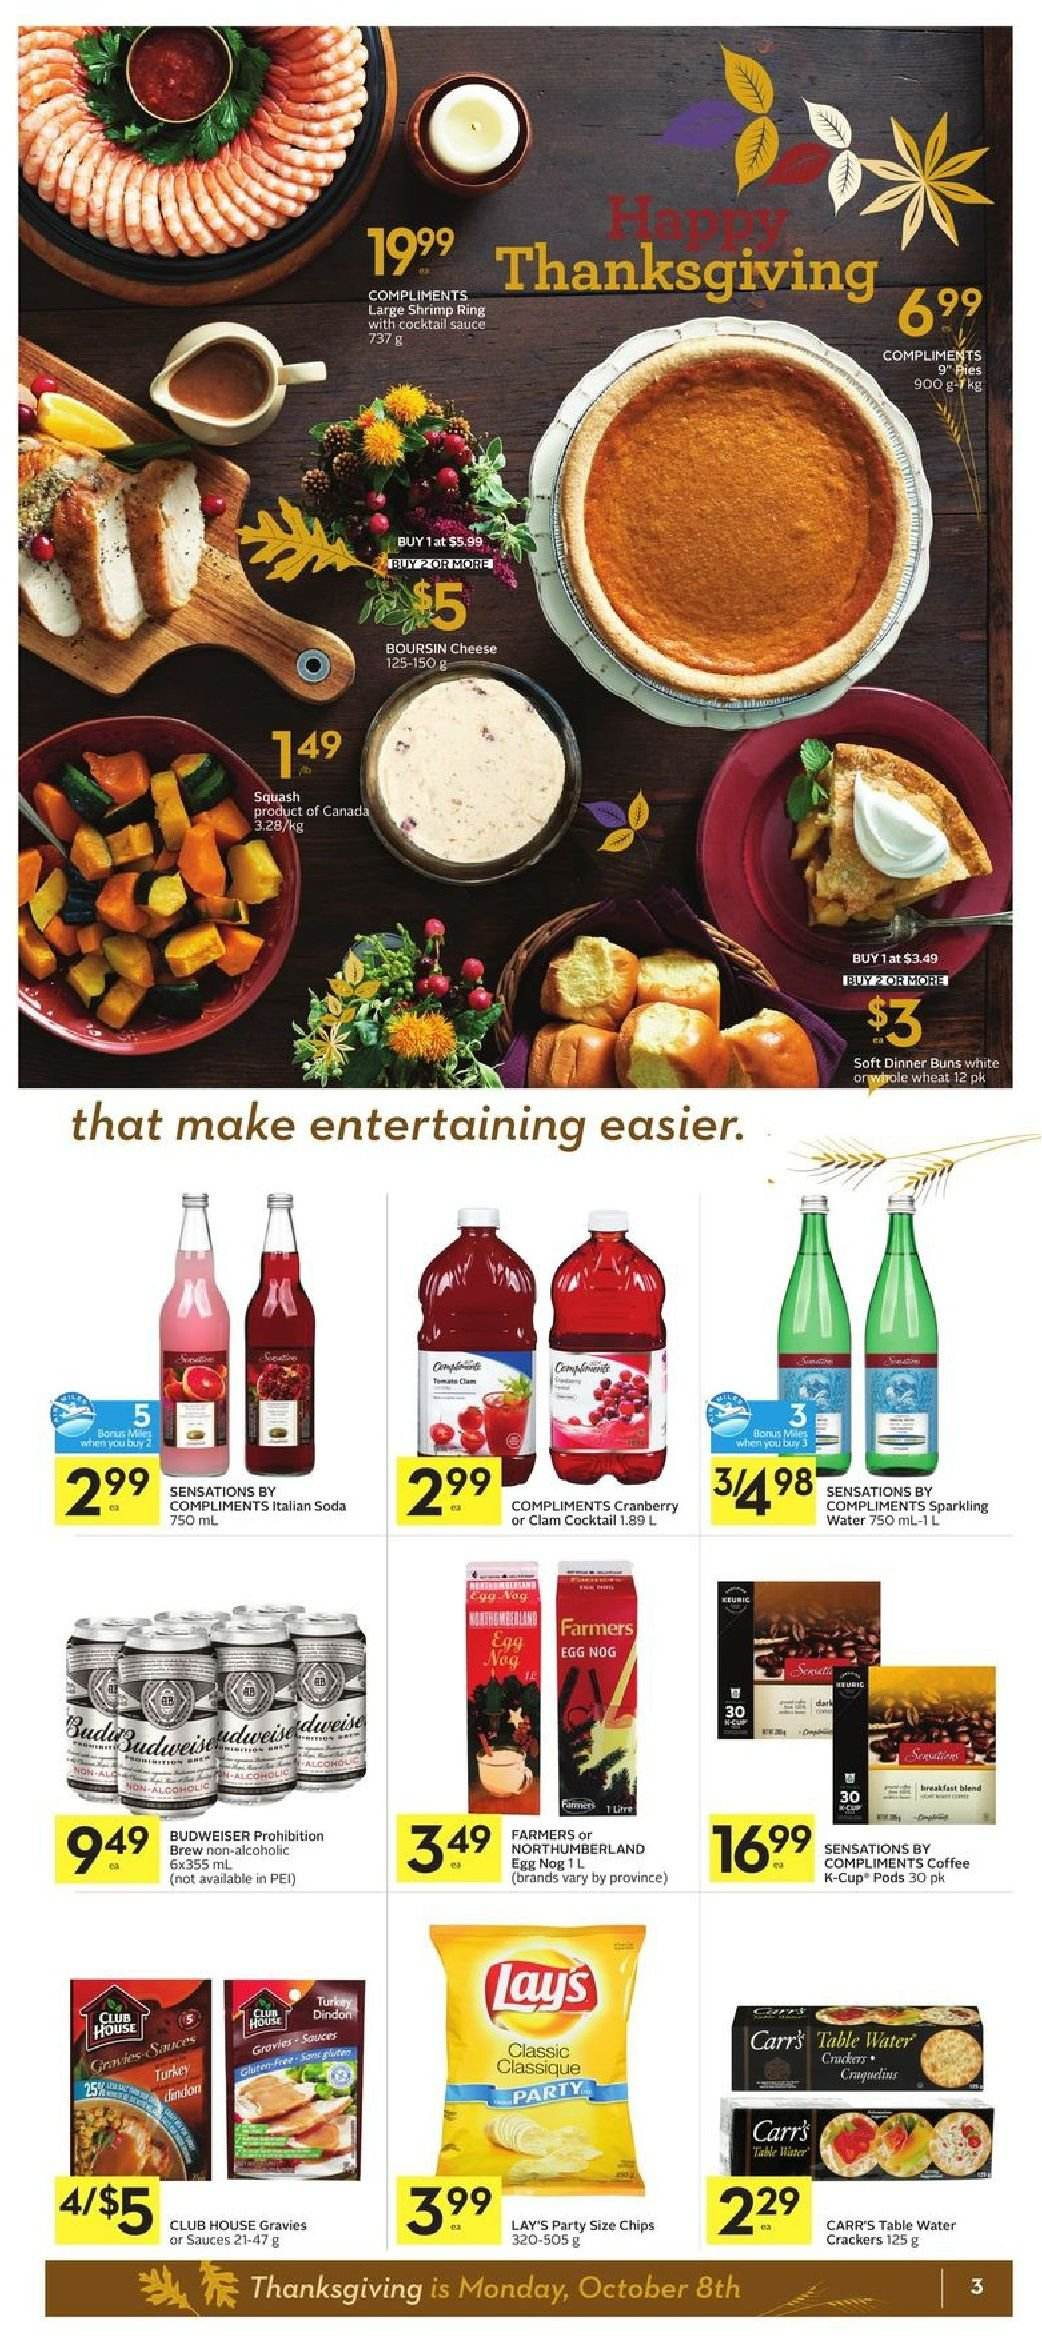 Foodland Flyer  - October 04, 2018 - October 10, 2018. Page 3.